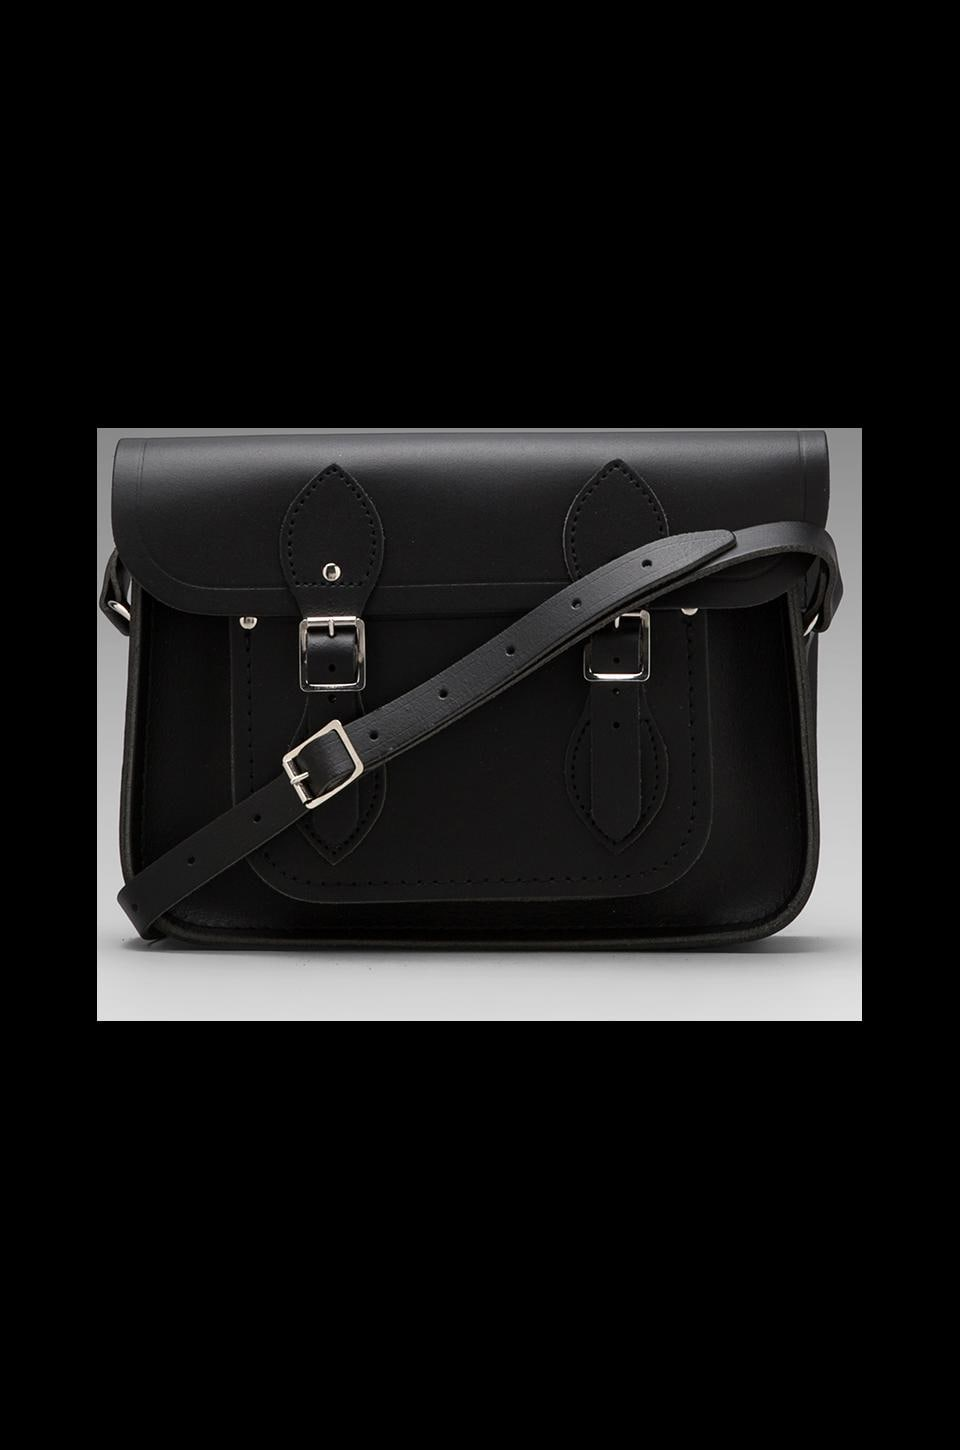 The Cambridge Satchel Company Core Collection Mini 11